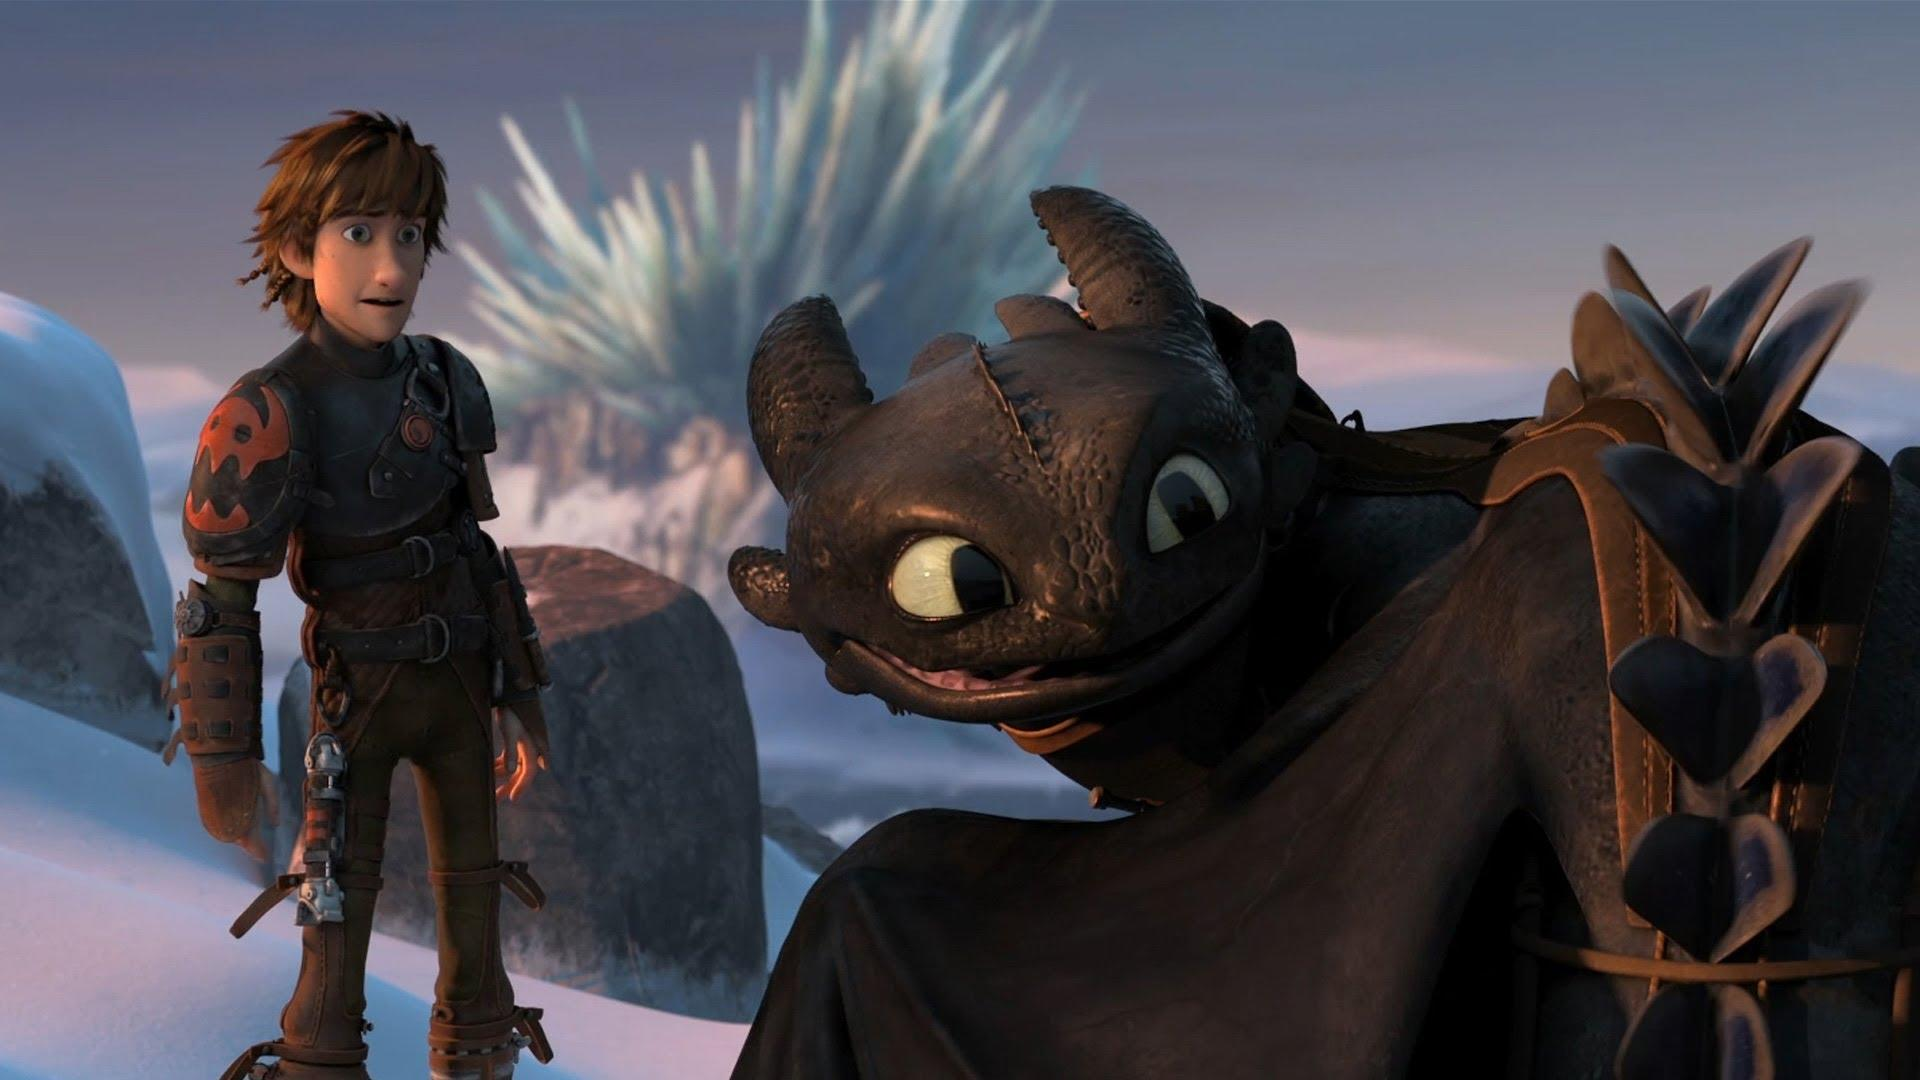 How To Train Your Dragon 3 By Far The Strongest Of The Series